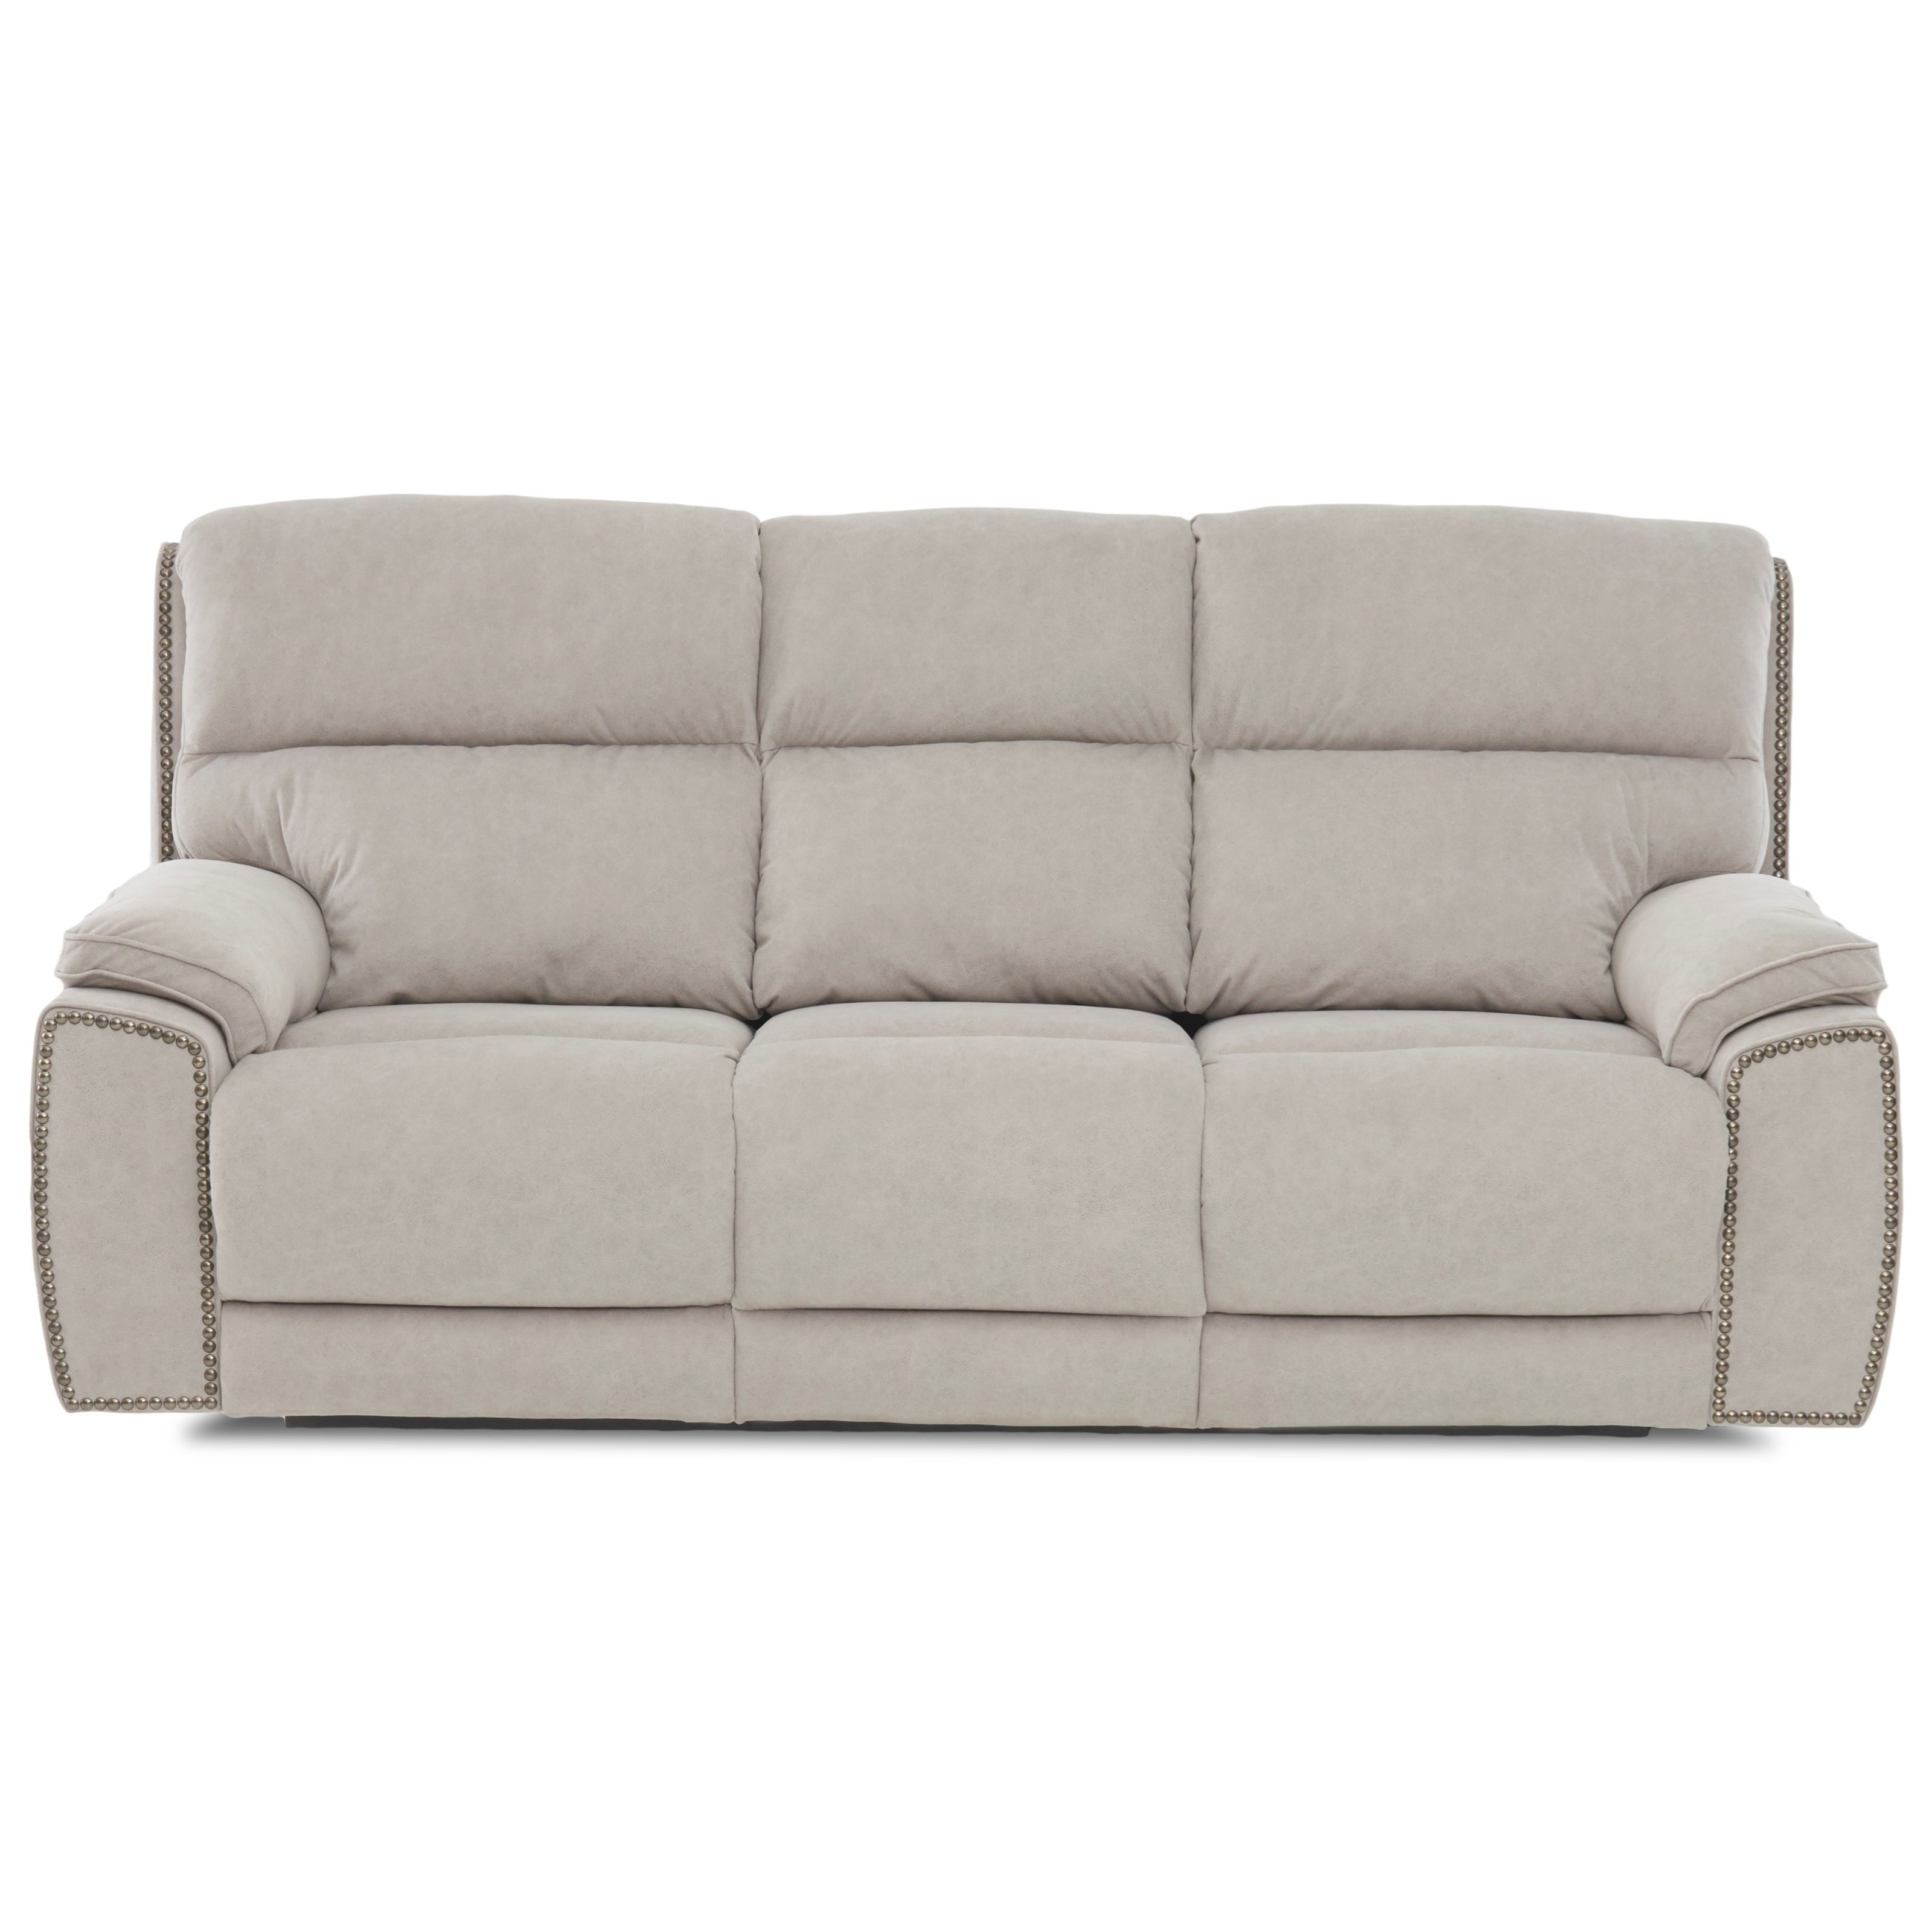 Power Reclining Sofa with Nailheads and USB Charging Ports